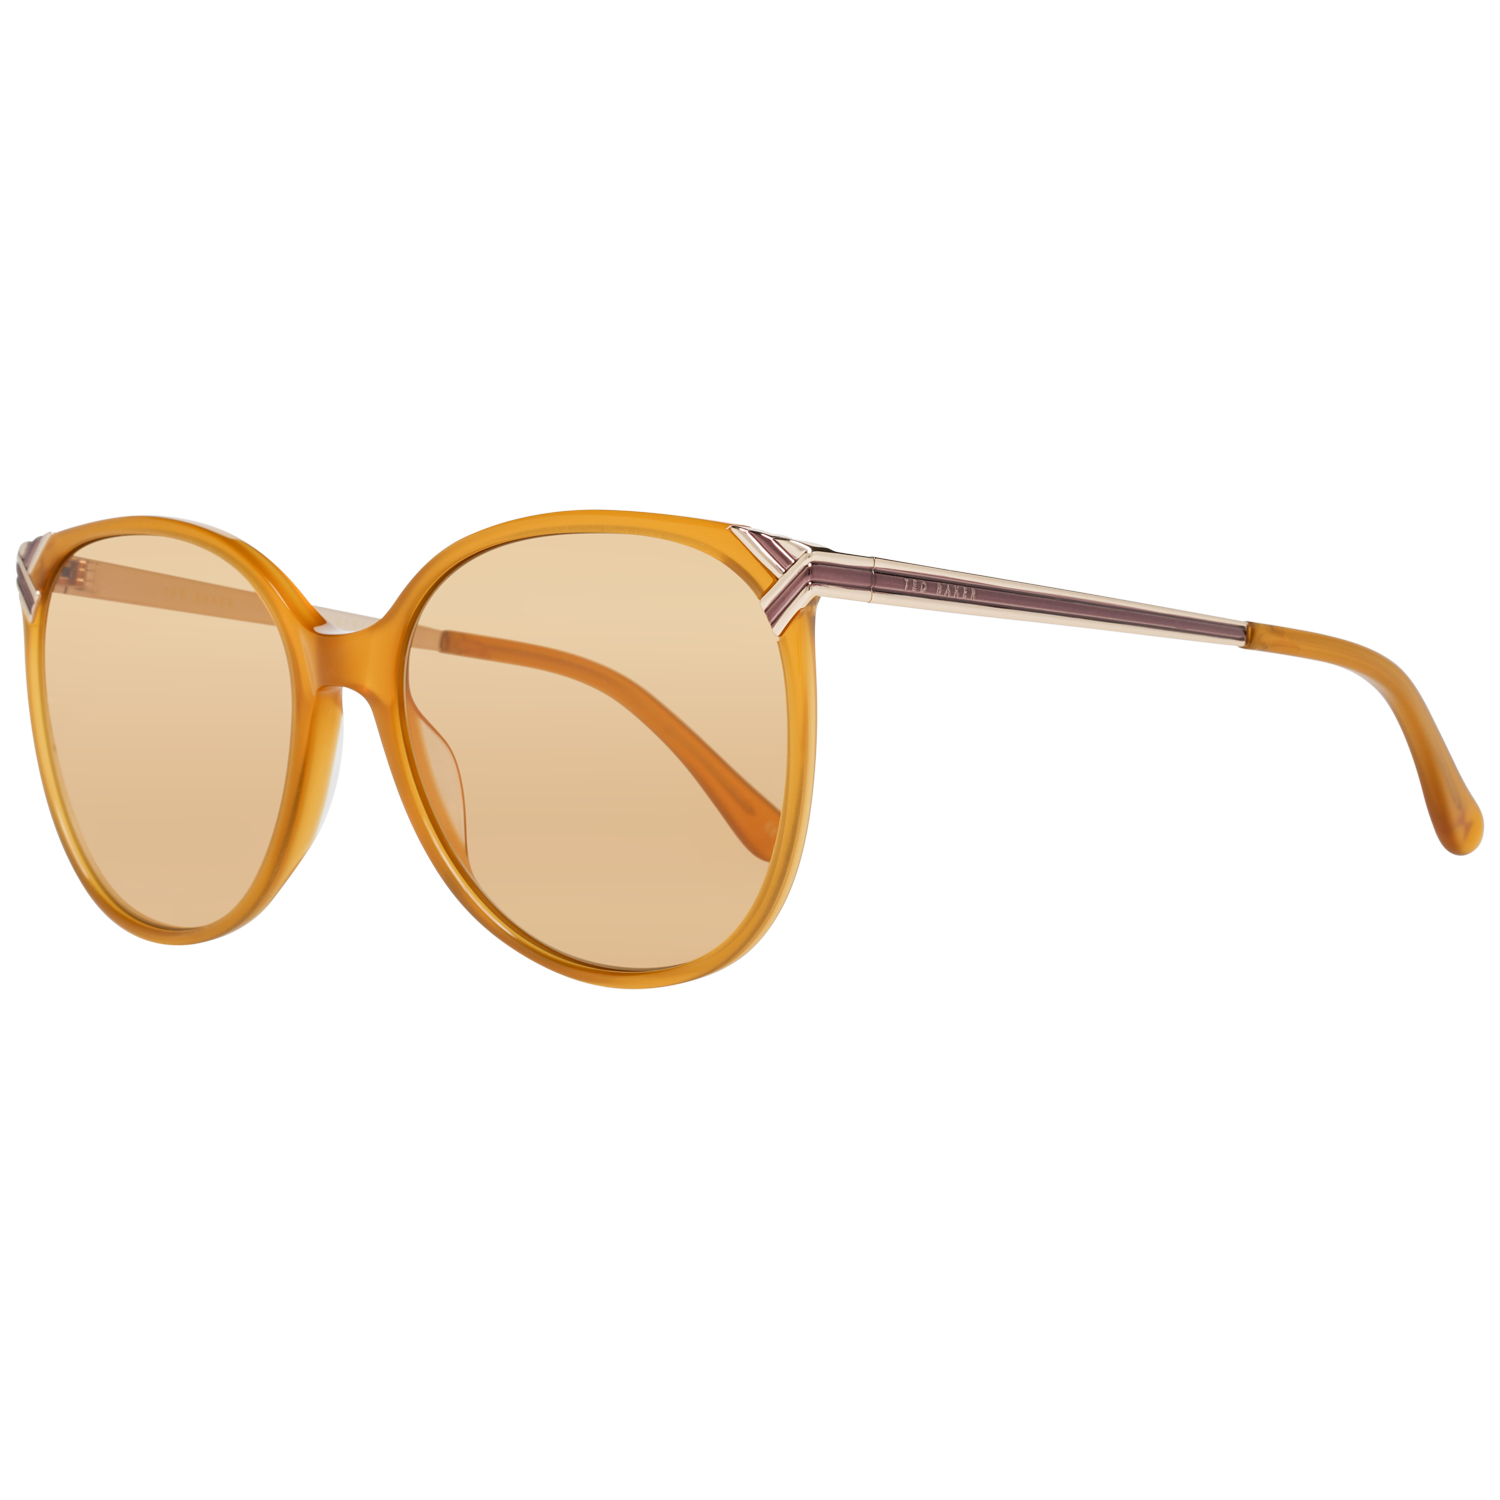 Ted Baker Sunglasses TB1590 330 57 Yellow